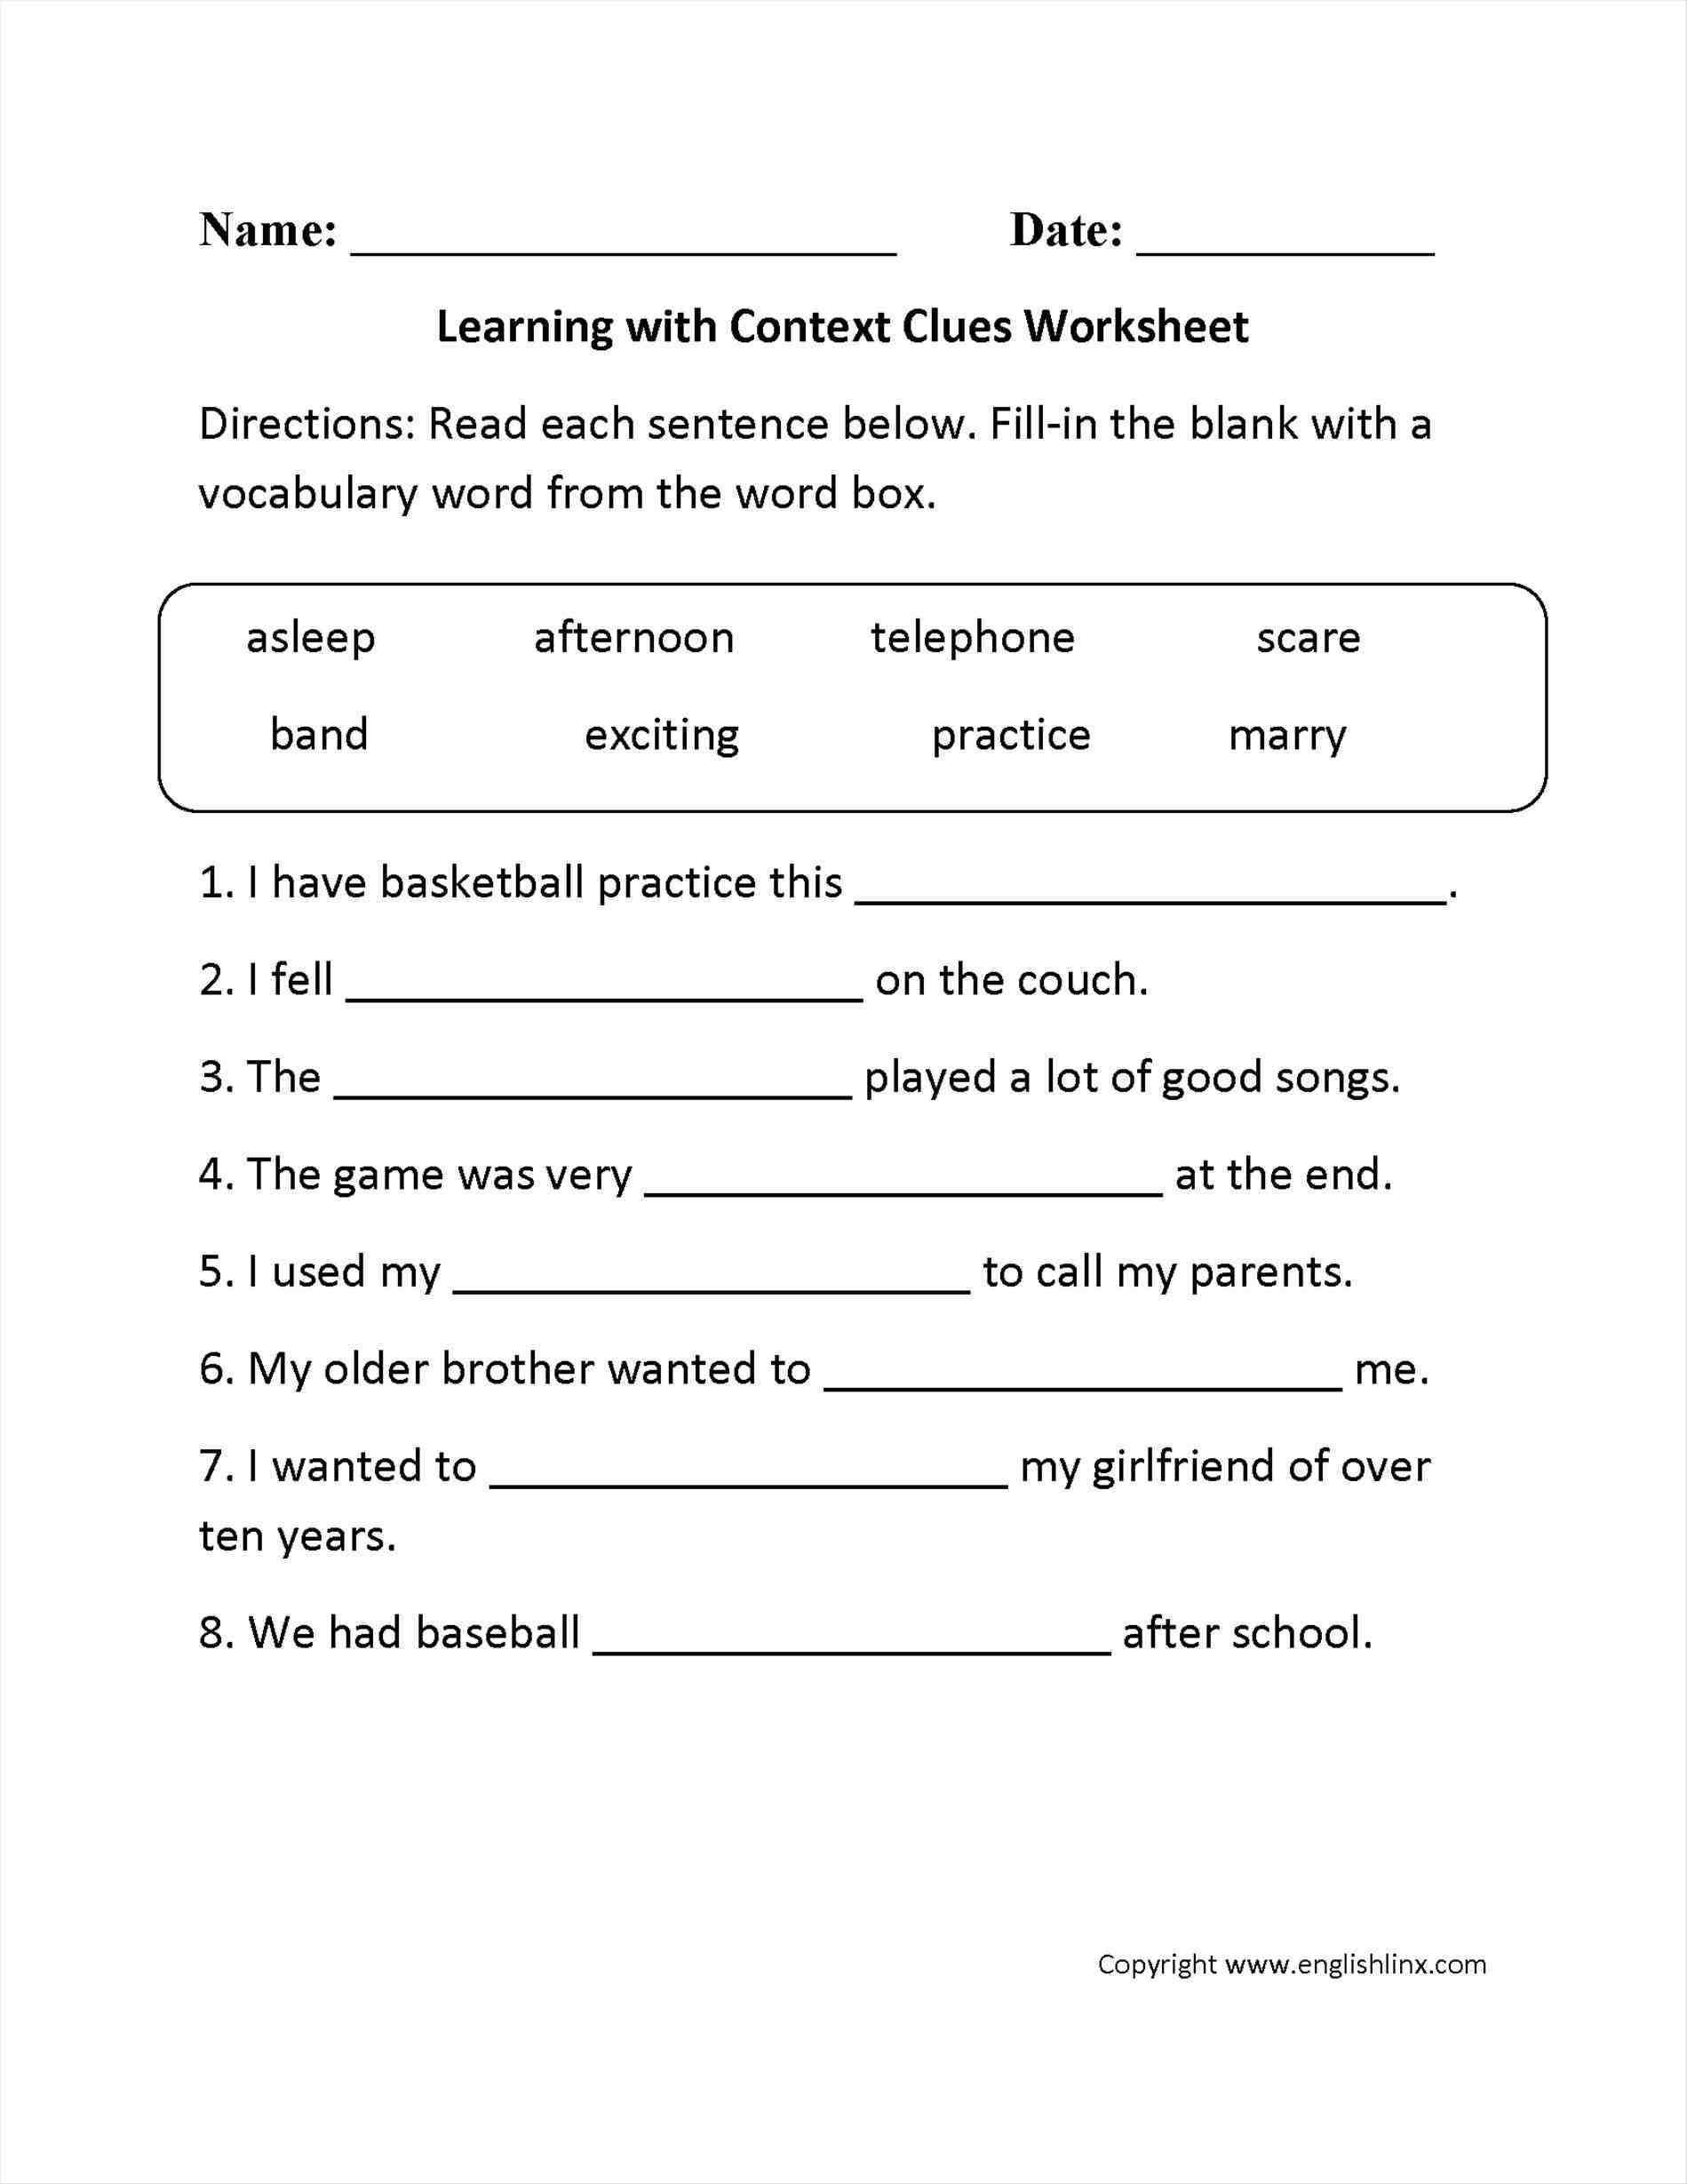 Drawing Conclusions Worksheets 3rd Grade with Drawing Worksheets for 3rd Grade